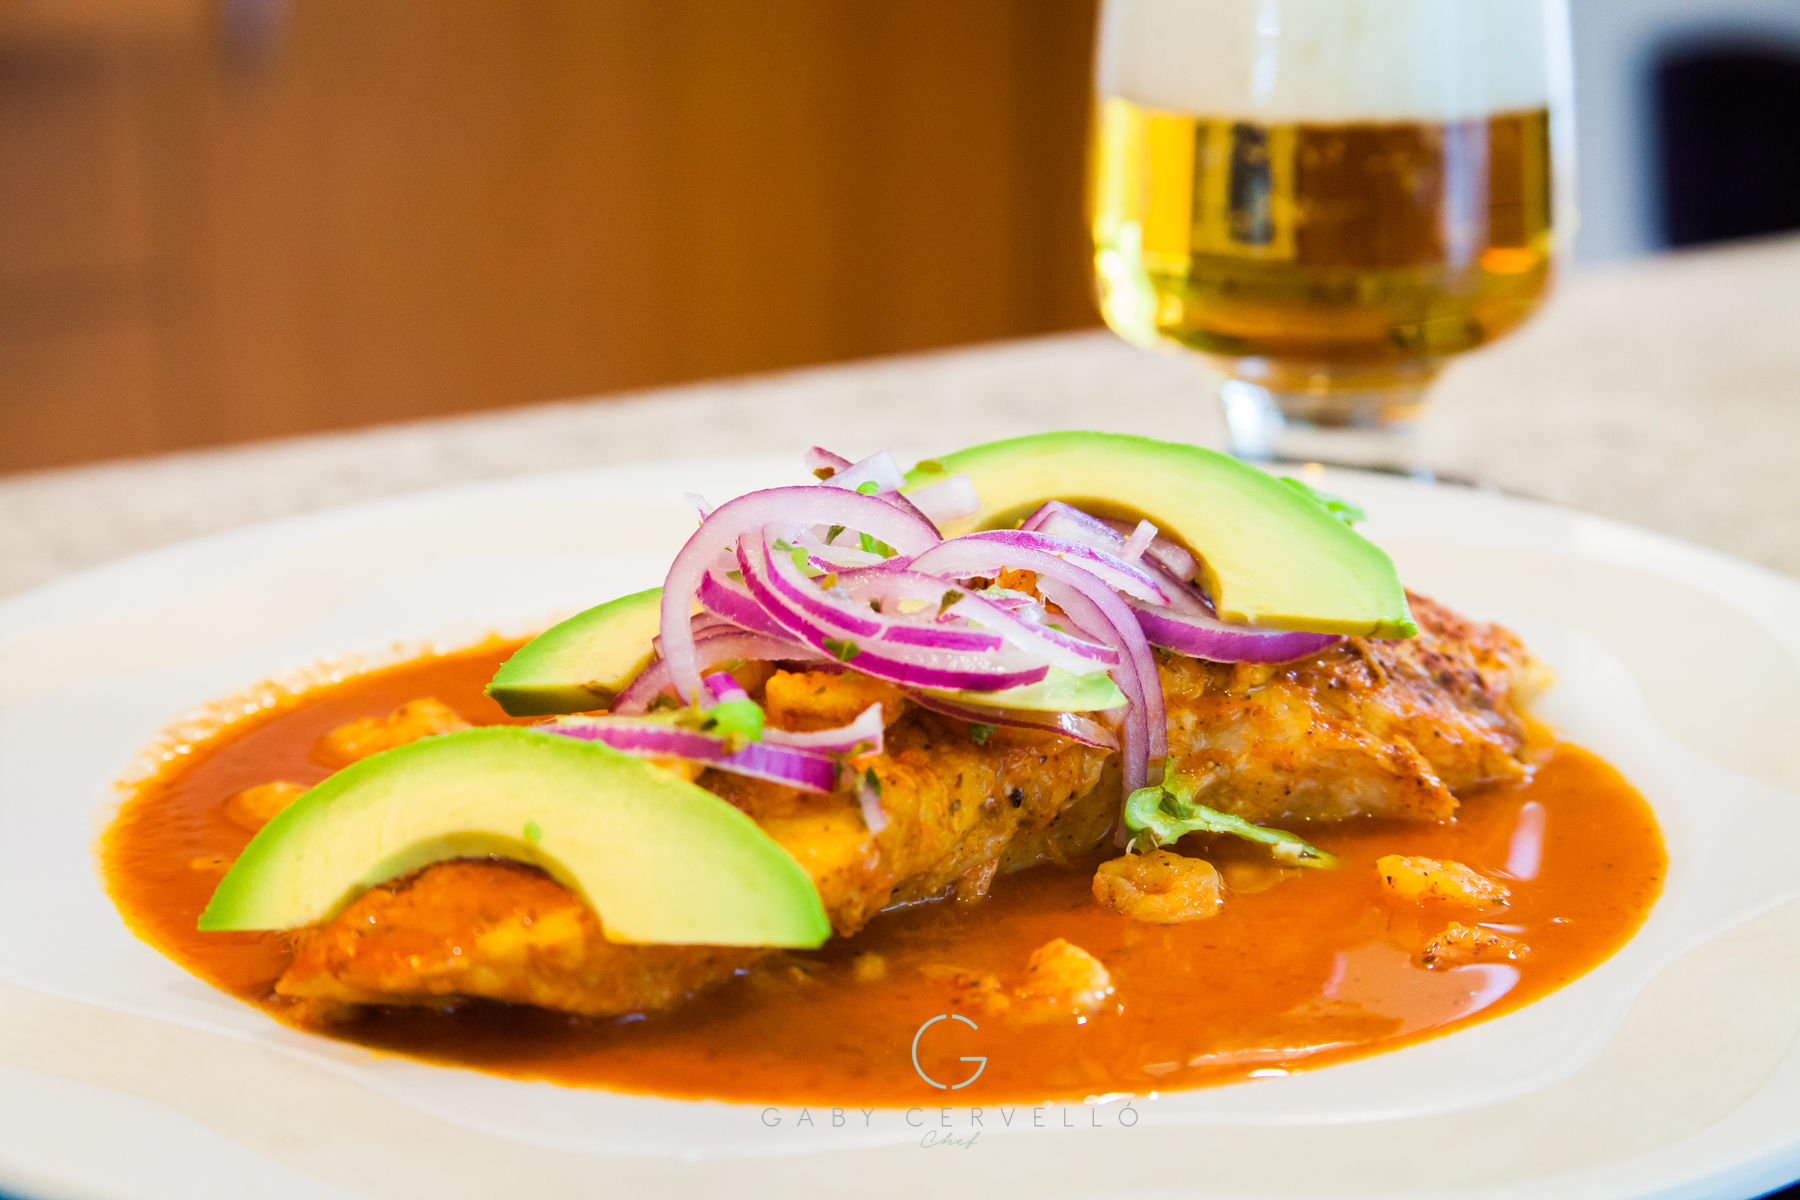 """'These are typical flavors of Southeast Mexico,"""" says Chef Gaby Cervello. """"White fish fillets and shrimp are marinated with achiote, orange juice, lemon, and spices, baked in the oven, and served with habanero sauce and red onion. You can use any white fish fillets."""""""